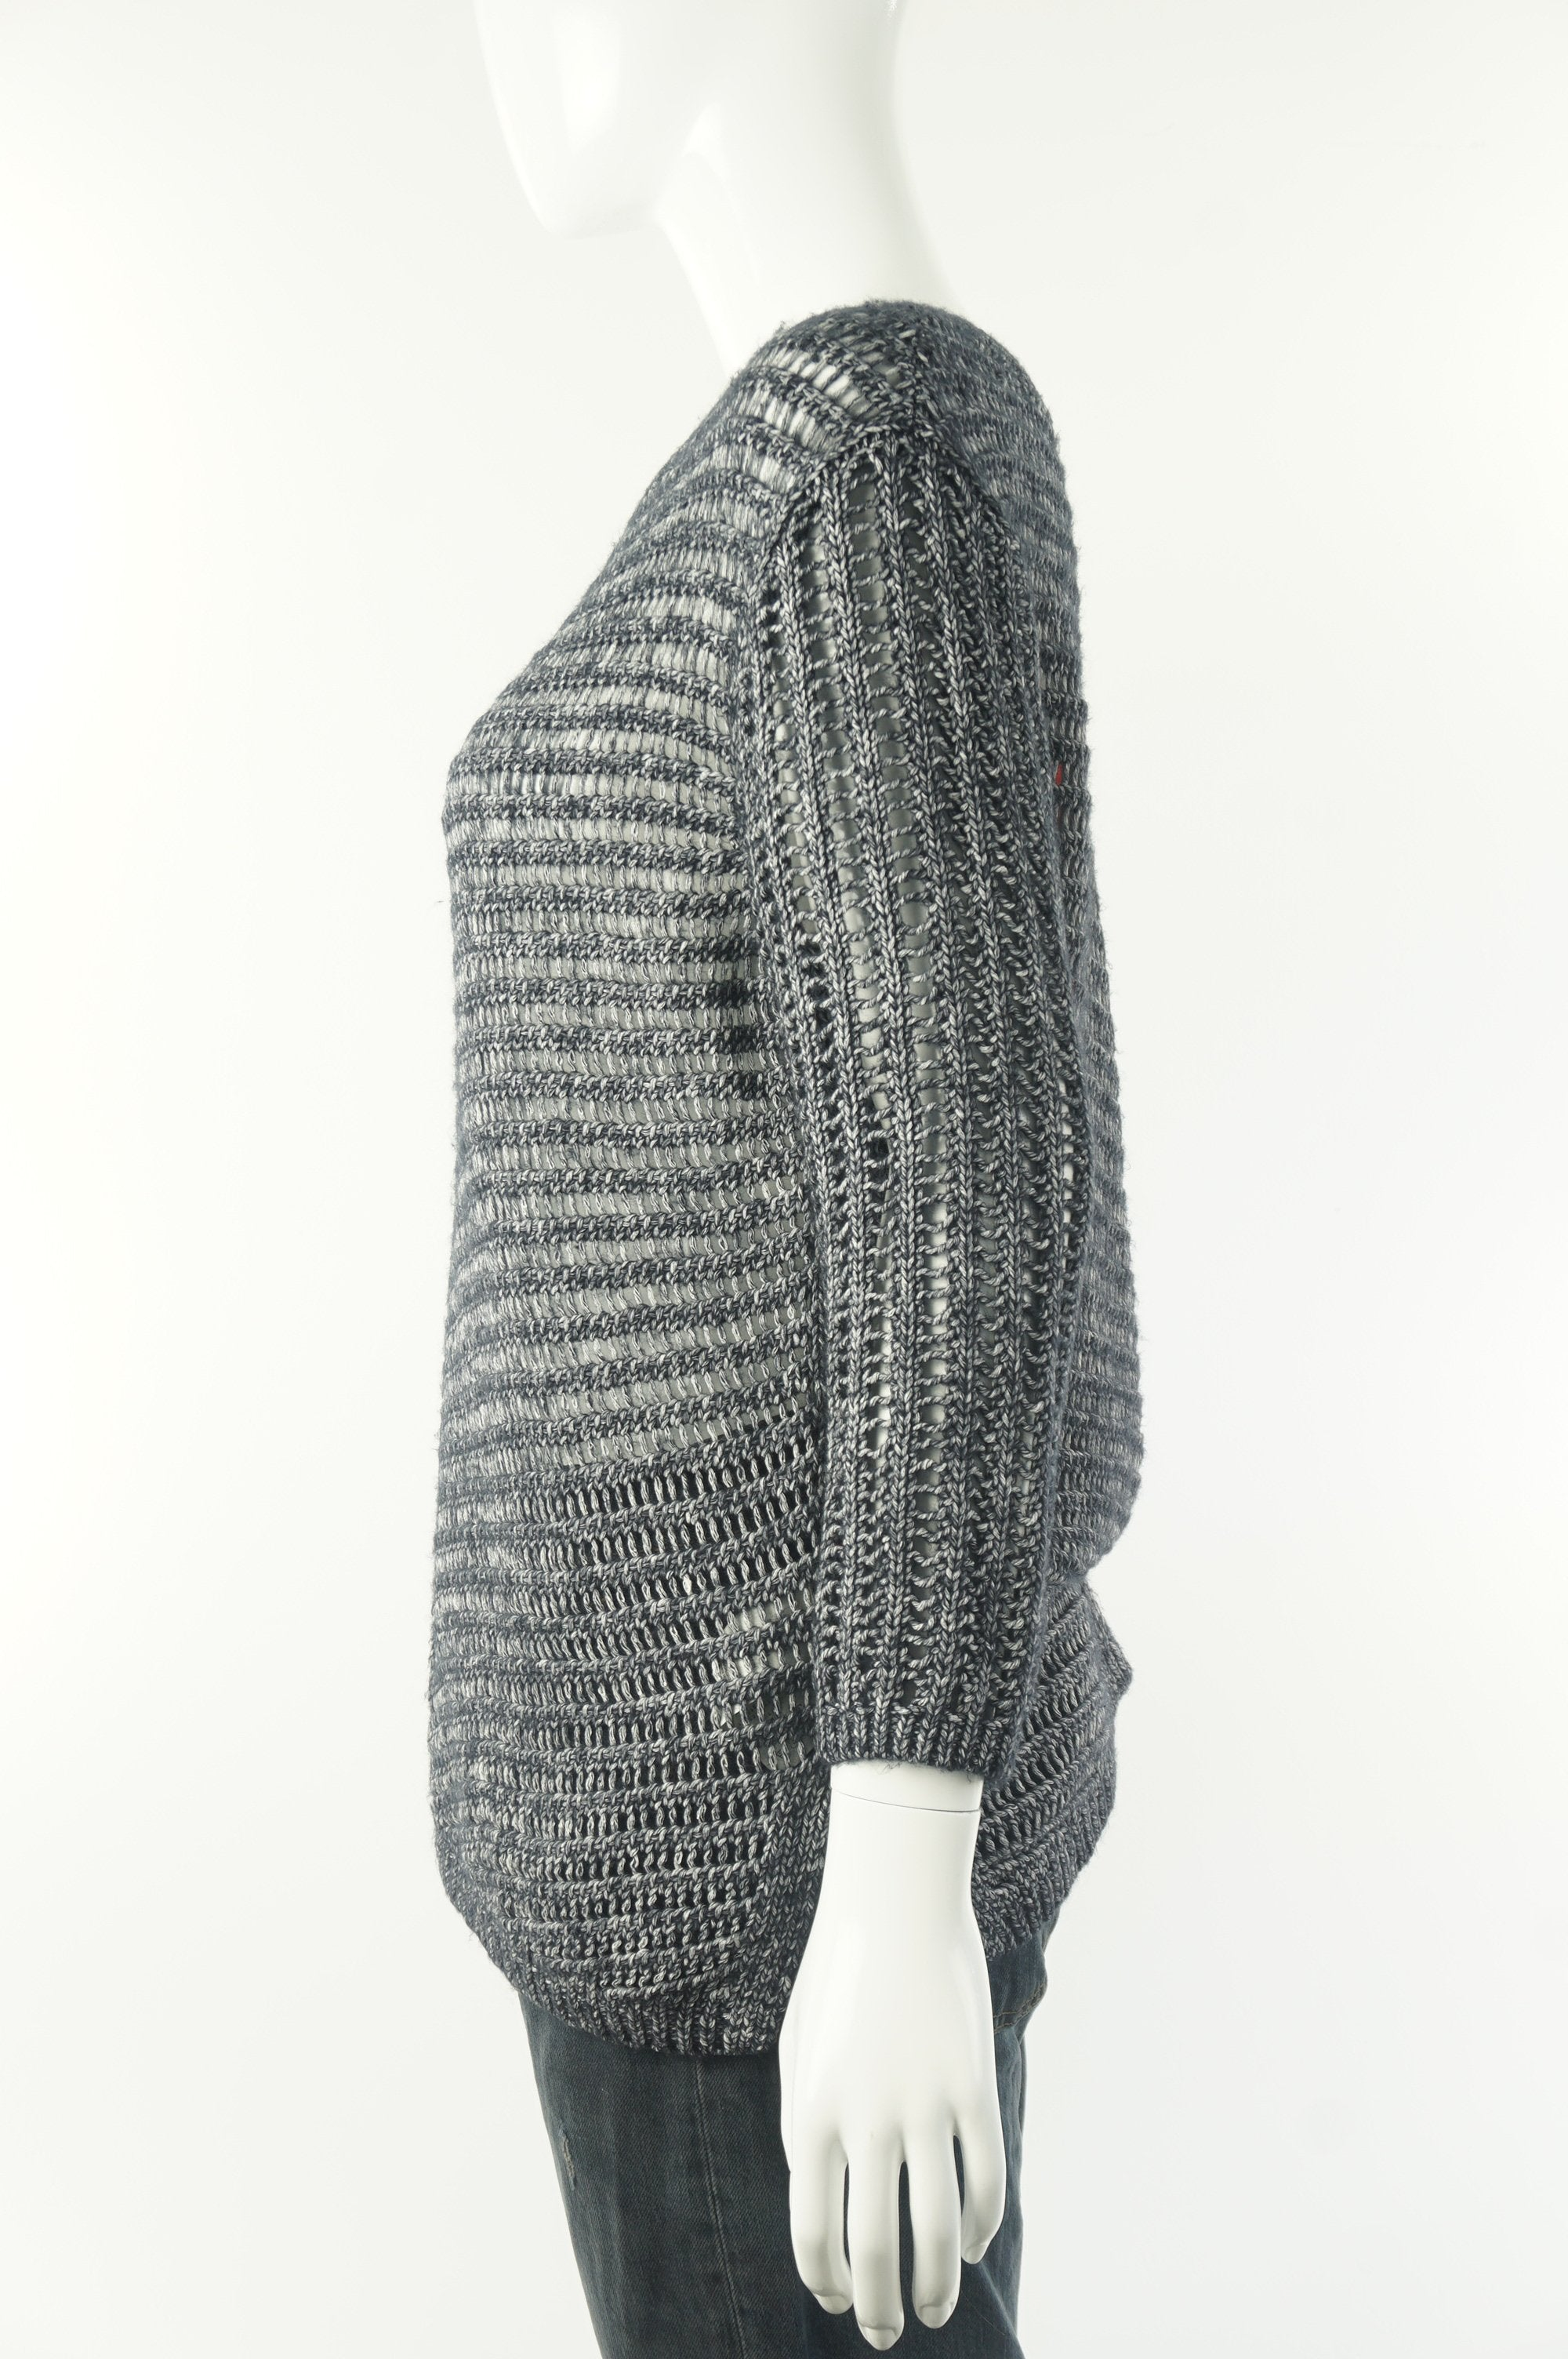 AX Amarni Exchange Loose Knit Pullover Sweater, Relaxed fit with dropped shoulder. A togo for everyday layering., Grey, 78% cotton, 22% acrylic, women's Tops, women's Grey Tops, AX Amarni Exchange women's Tops, Amarni exchange women's sweater, women's sweater for spring, amarni exchange loose knit sweater